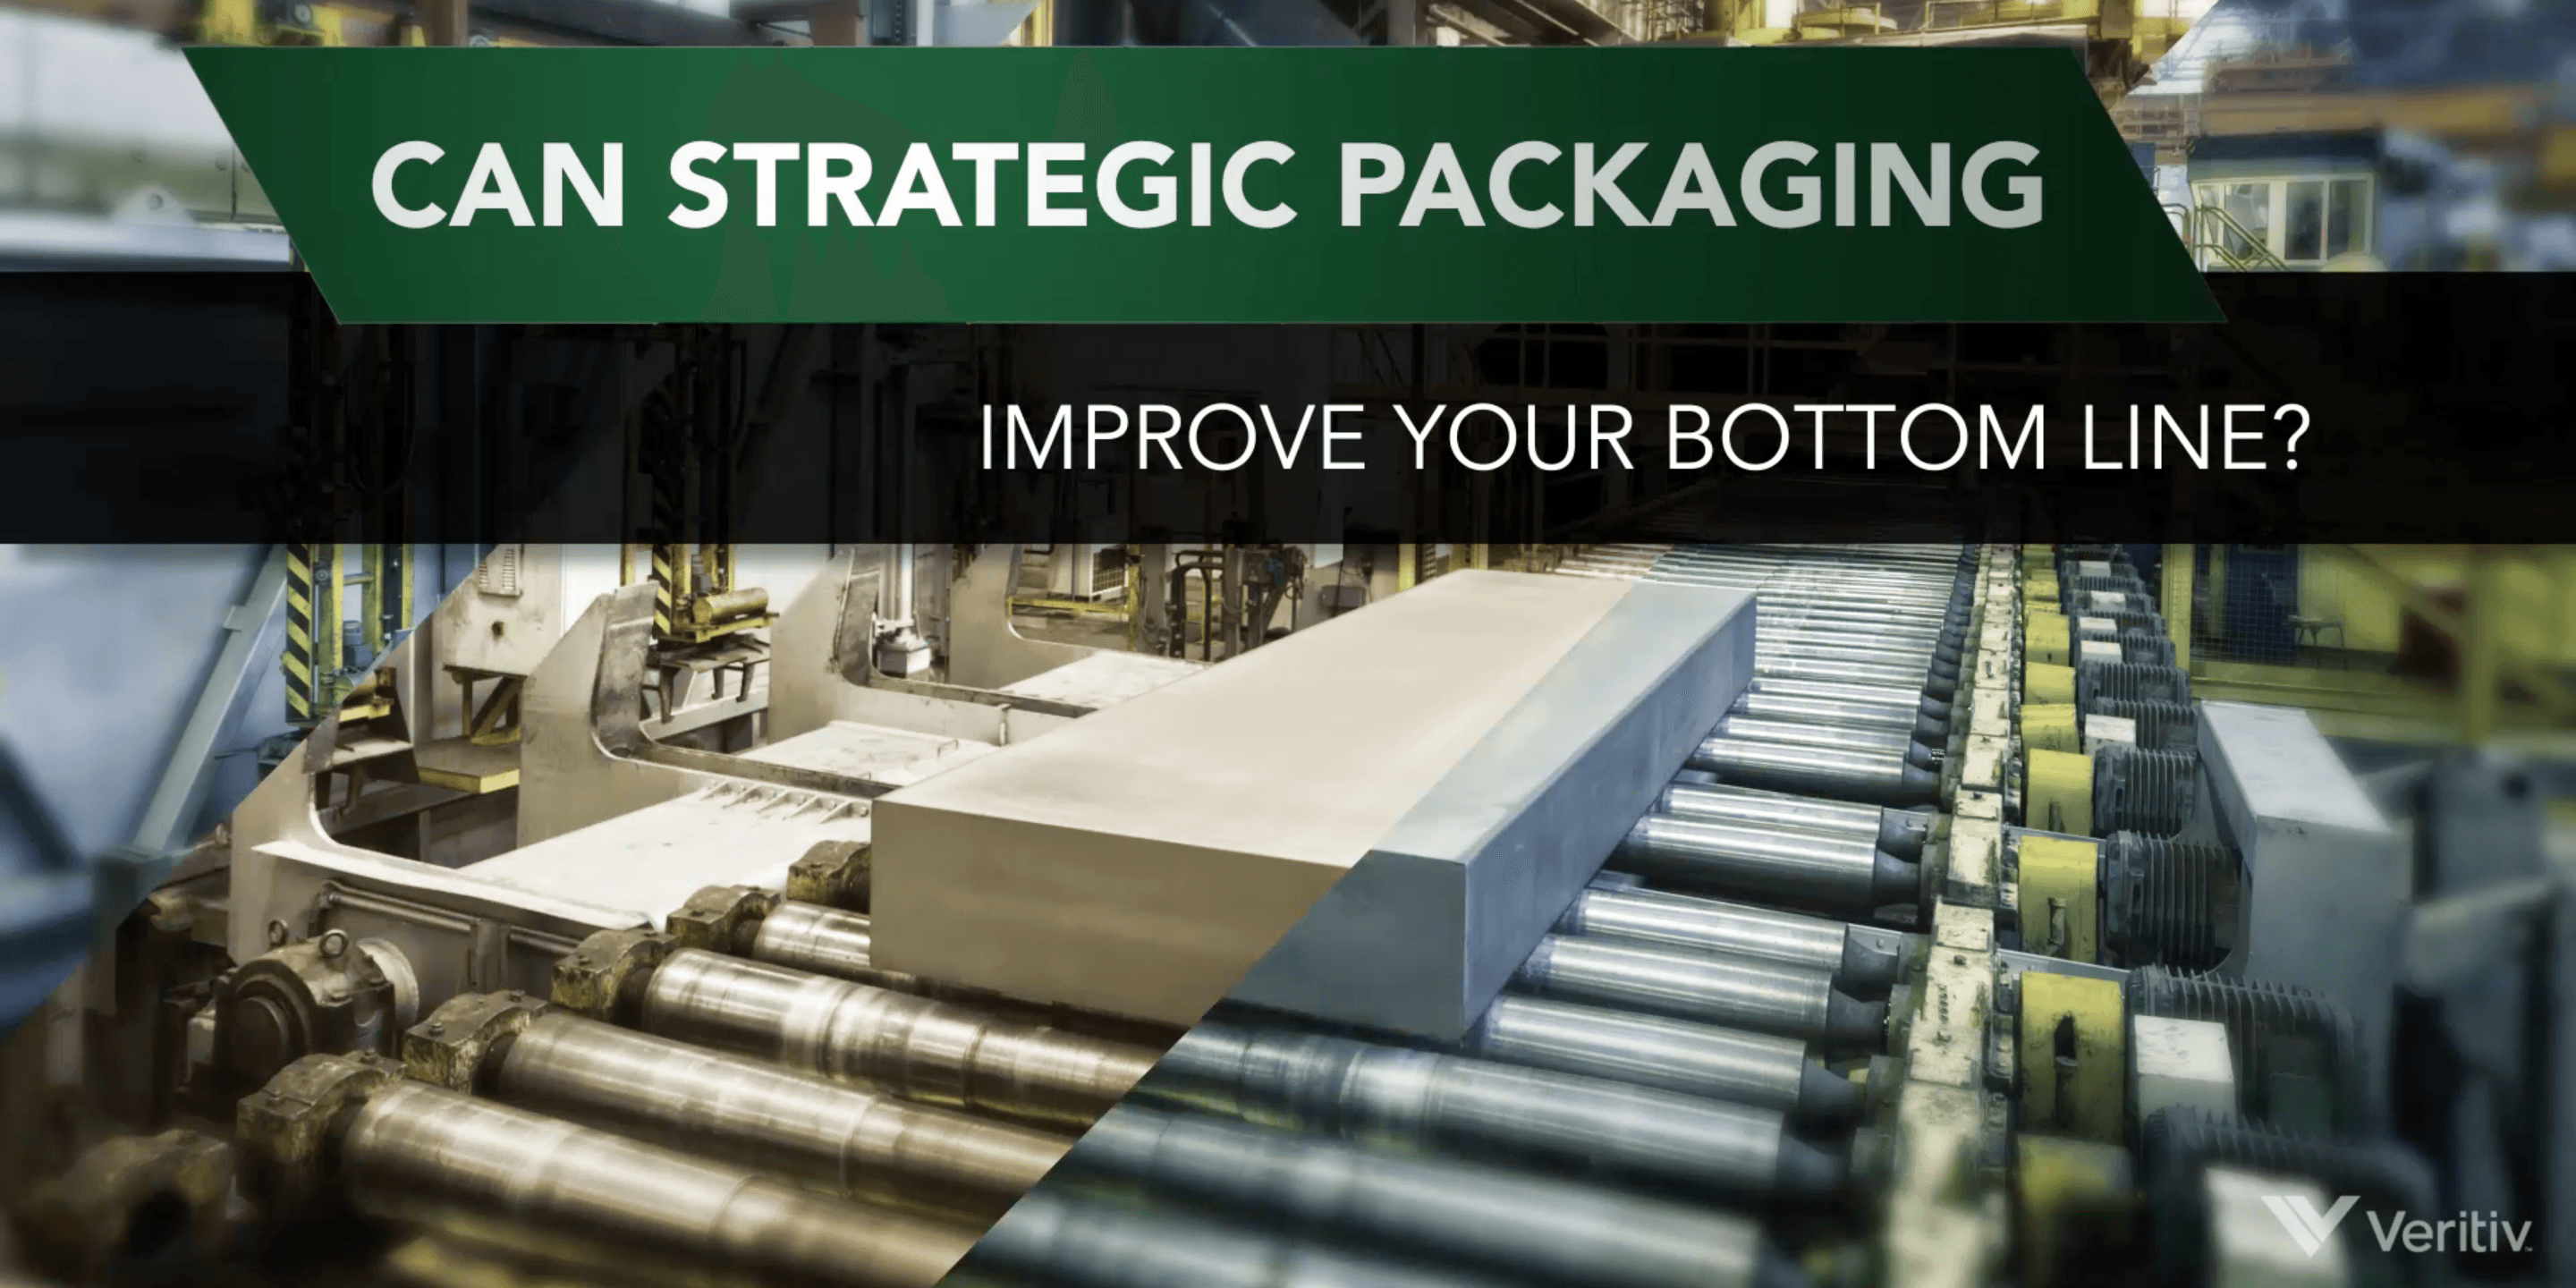 Can strategic packaging improve your bottom line?